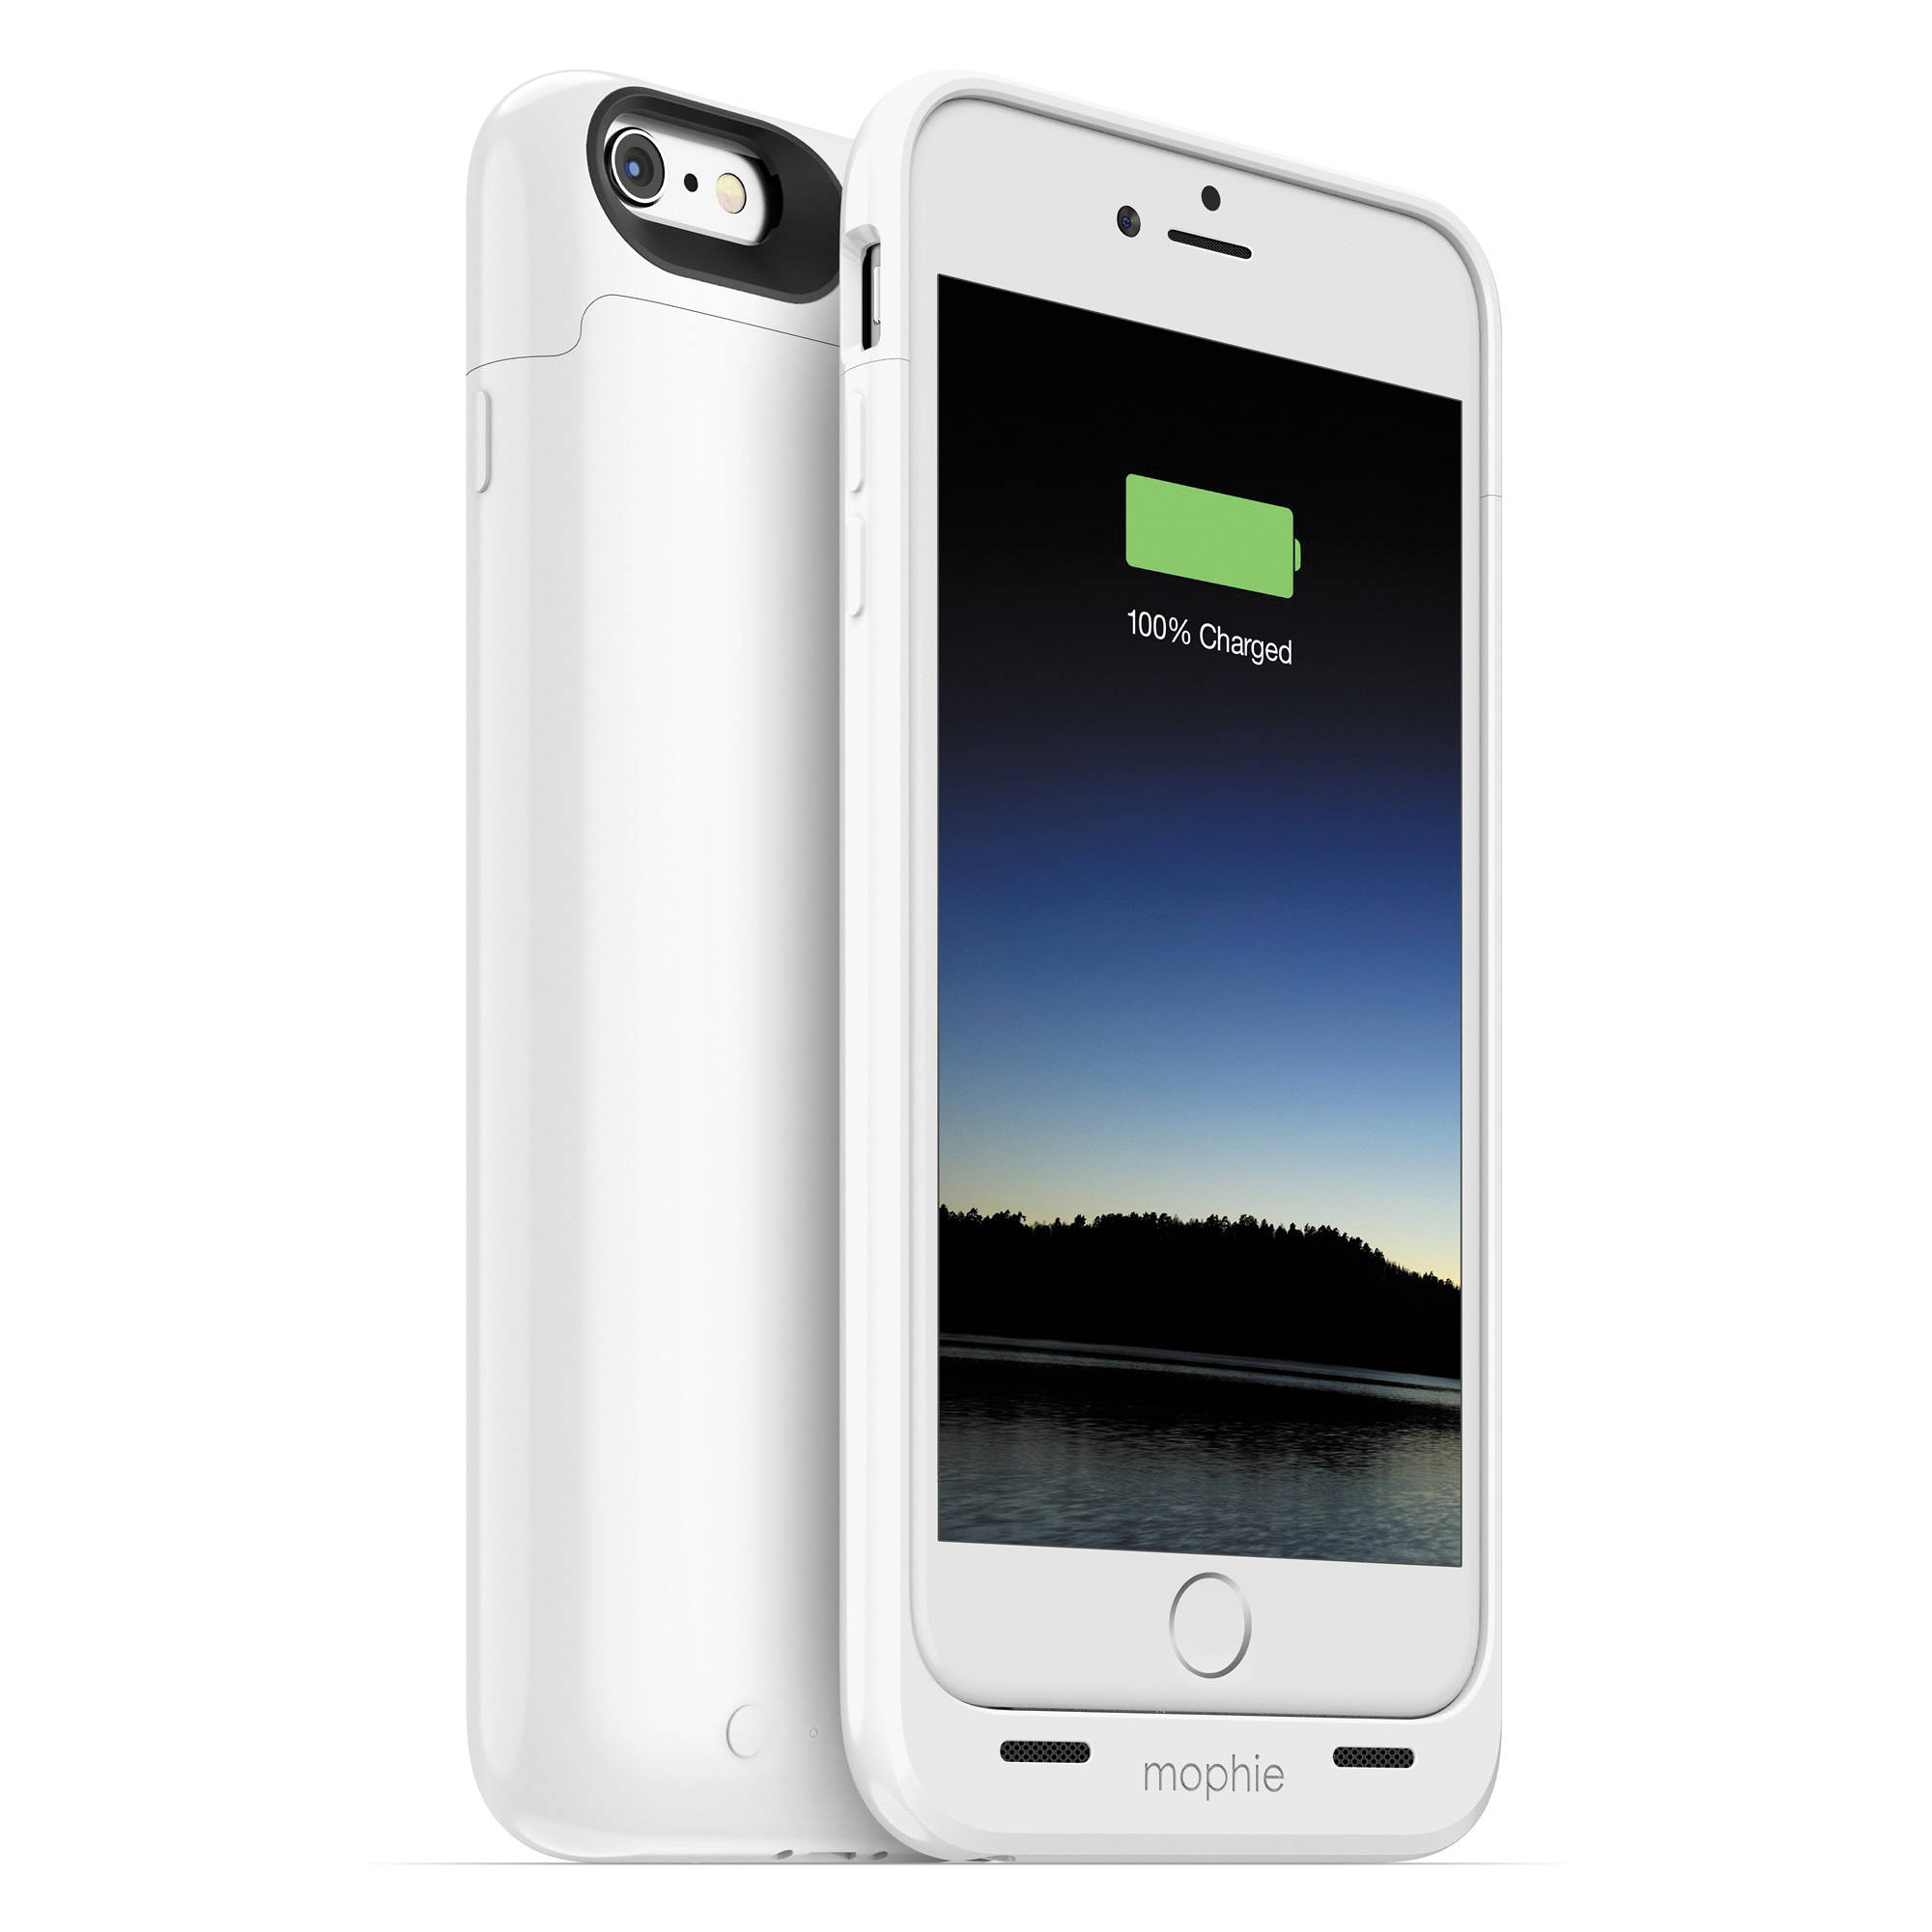 Case Design mobile phone covers and cases : mophie juice pack Battery Case for iPhone 6 Plus/6s Plus (White)